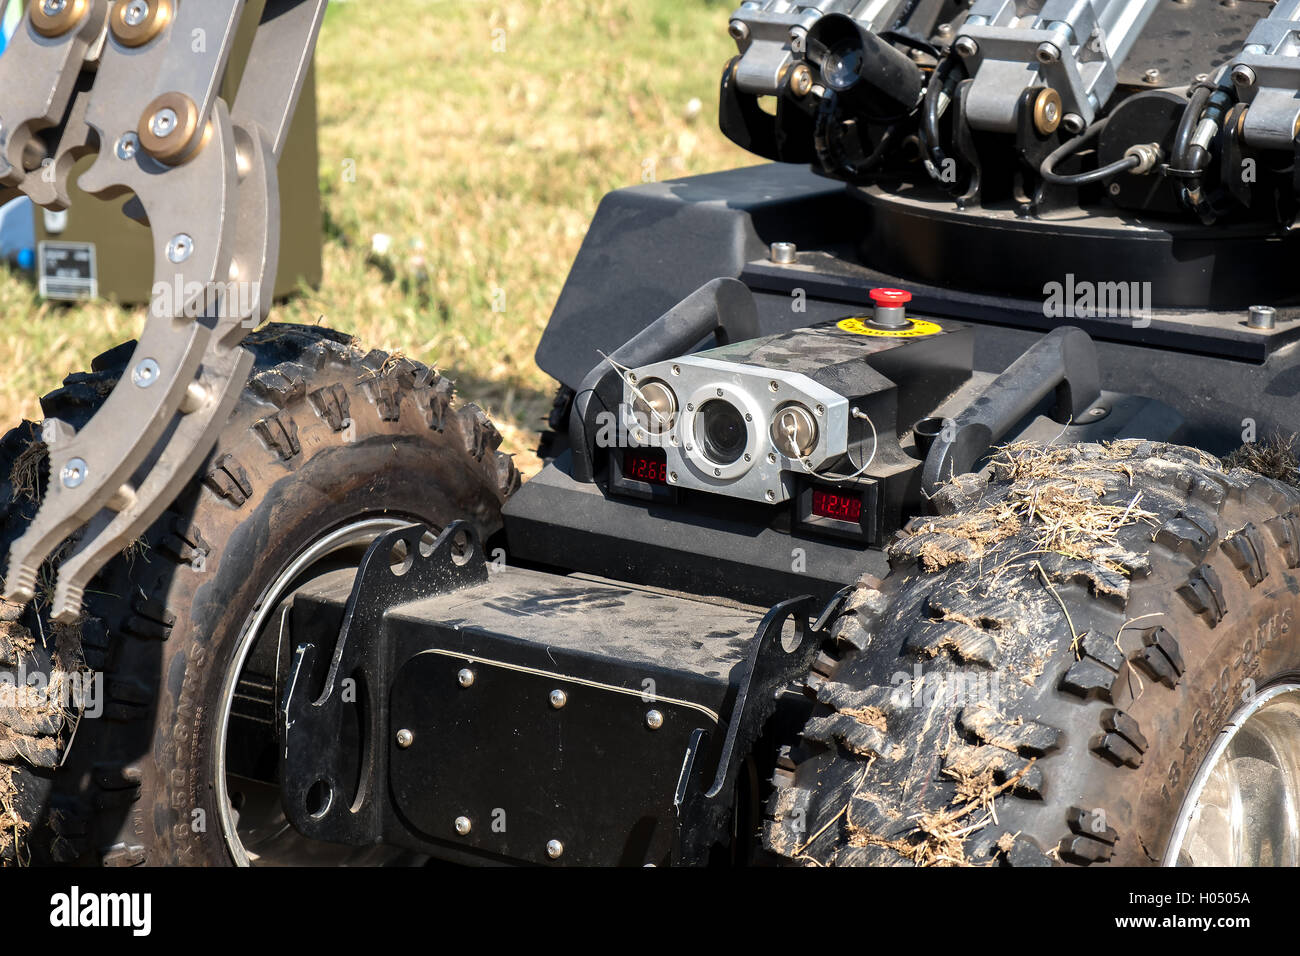 closeup camera bomb disposal robot unit defuse bomb - Stock Image